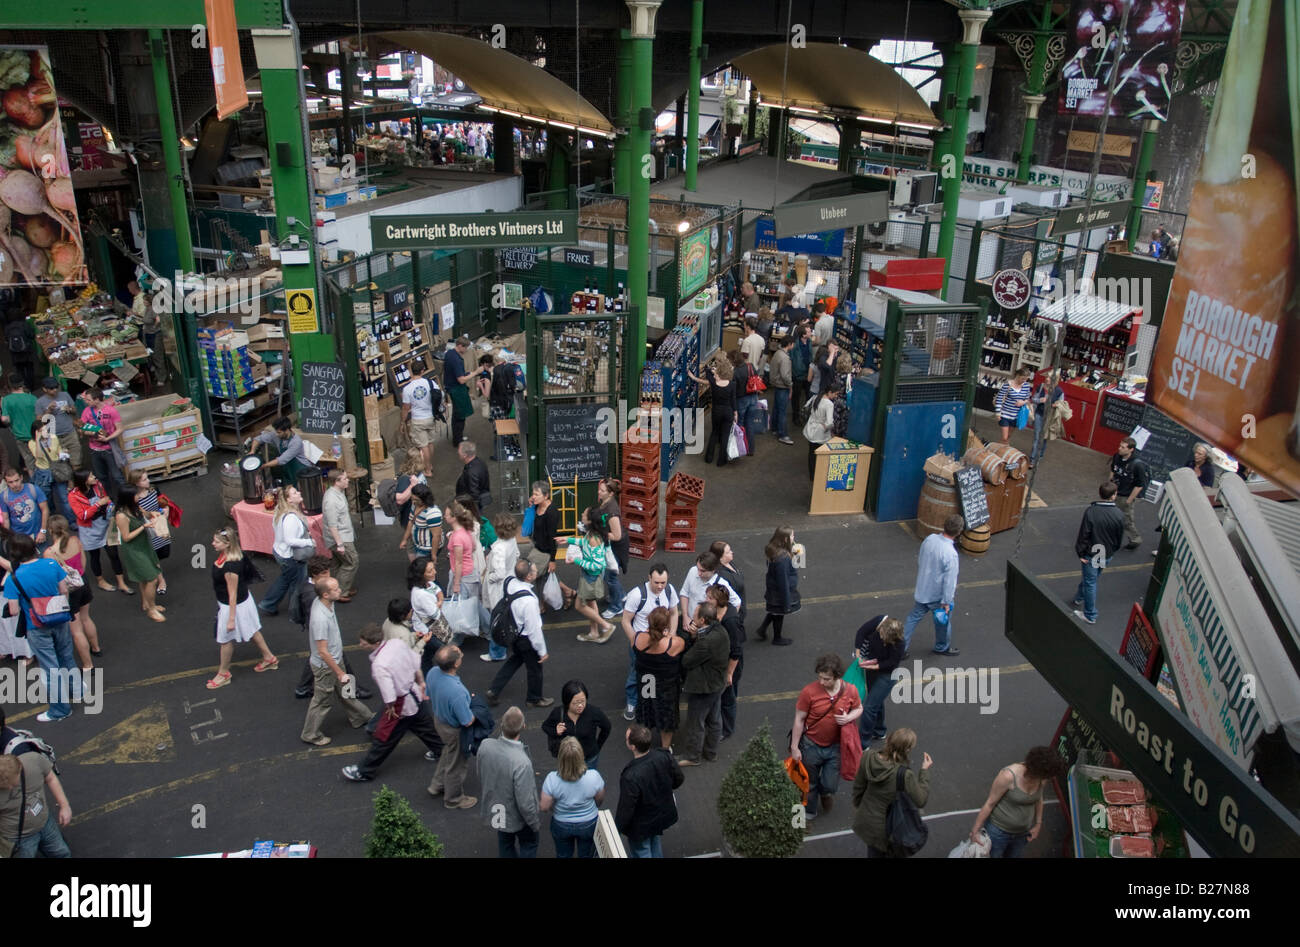 Borough Market - Southwark - London - Stock Image